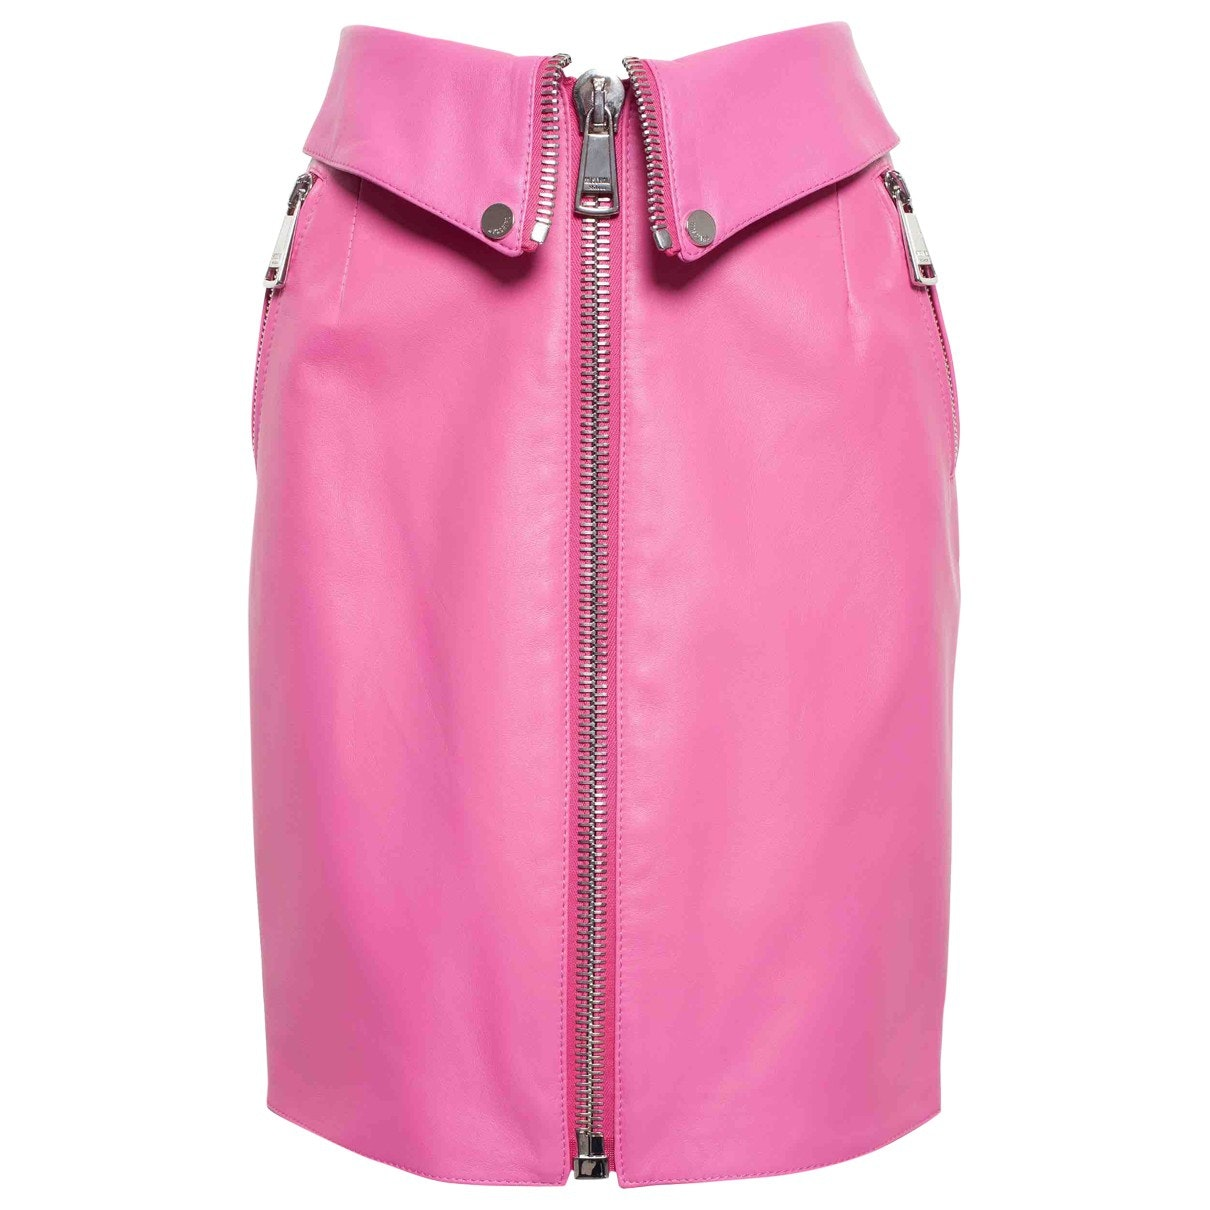 MOSCHINO Pink Leather Mini Skirt; Size: 42 FR; $470.30